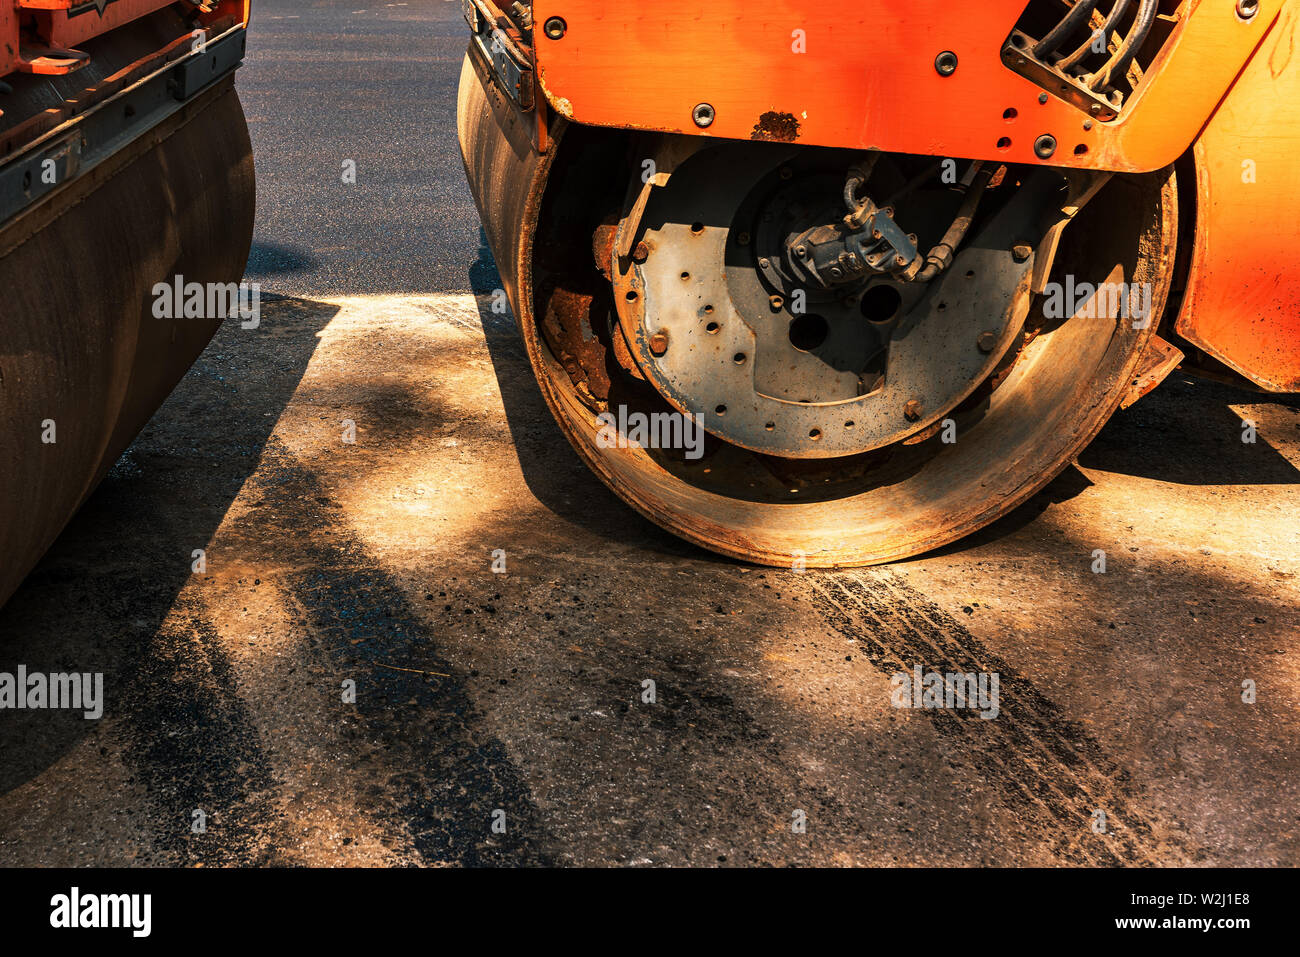 Asphalt road roller construction industry machine detail close up with selective focus - Stock Image